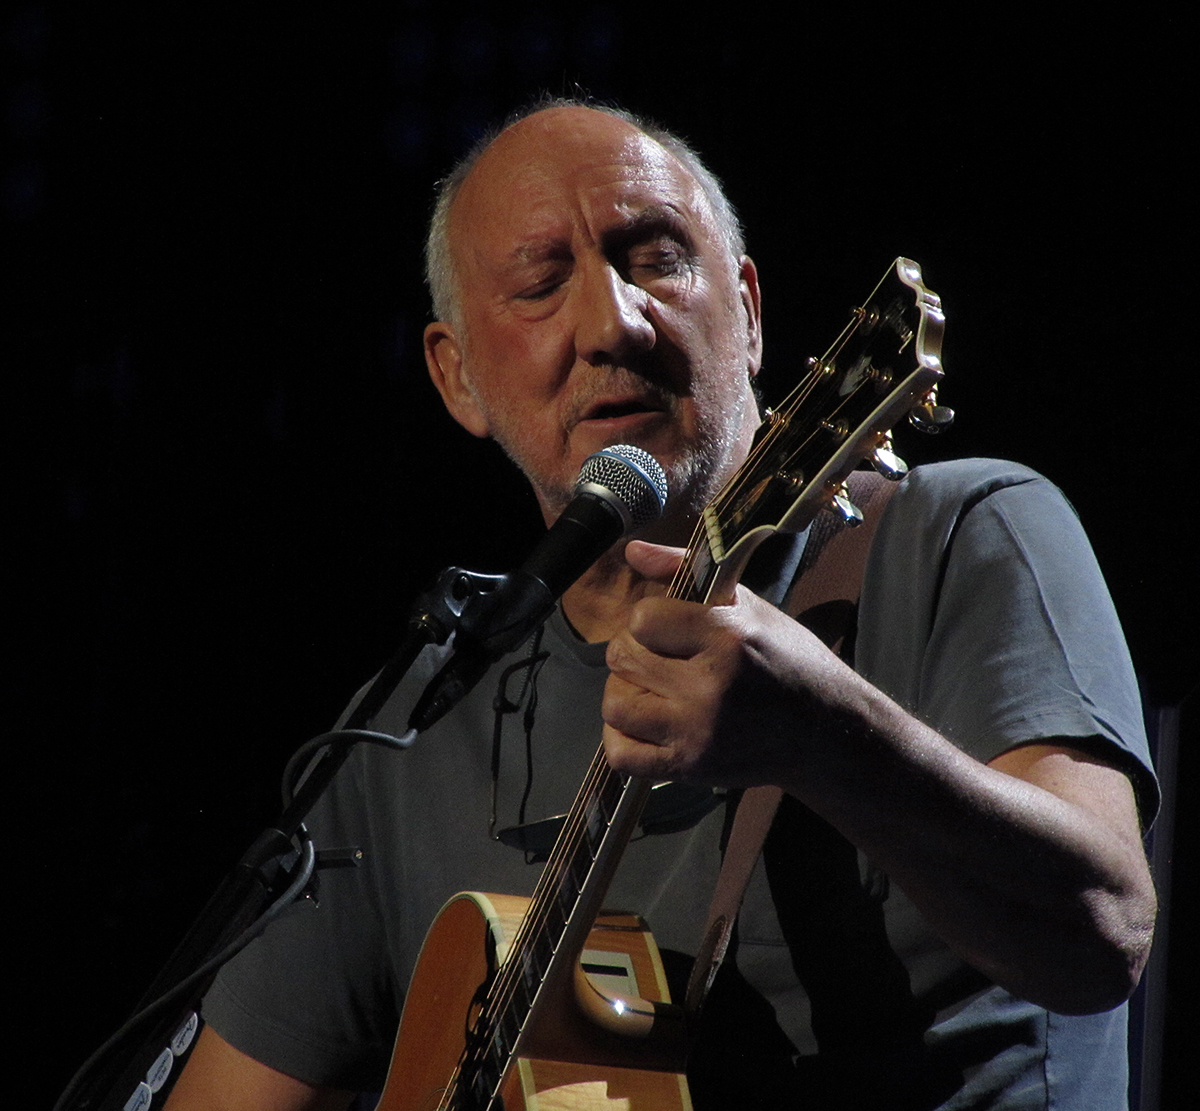 Pete Townshend at TD Garden in Boston, Massachusetts March 7, 2016